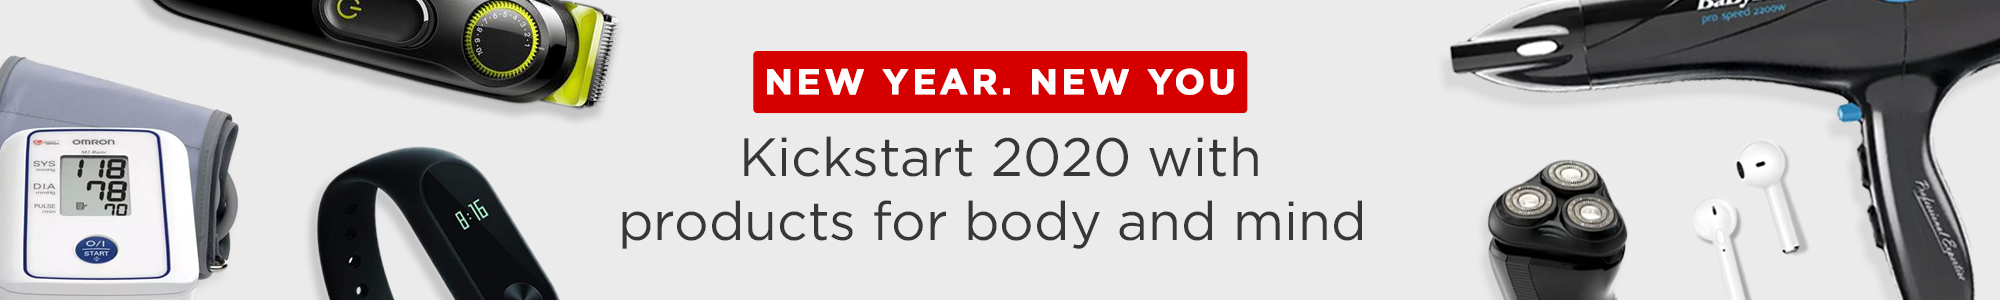 Kickstart 2020 with products for body and mind